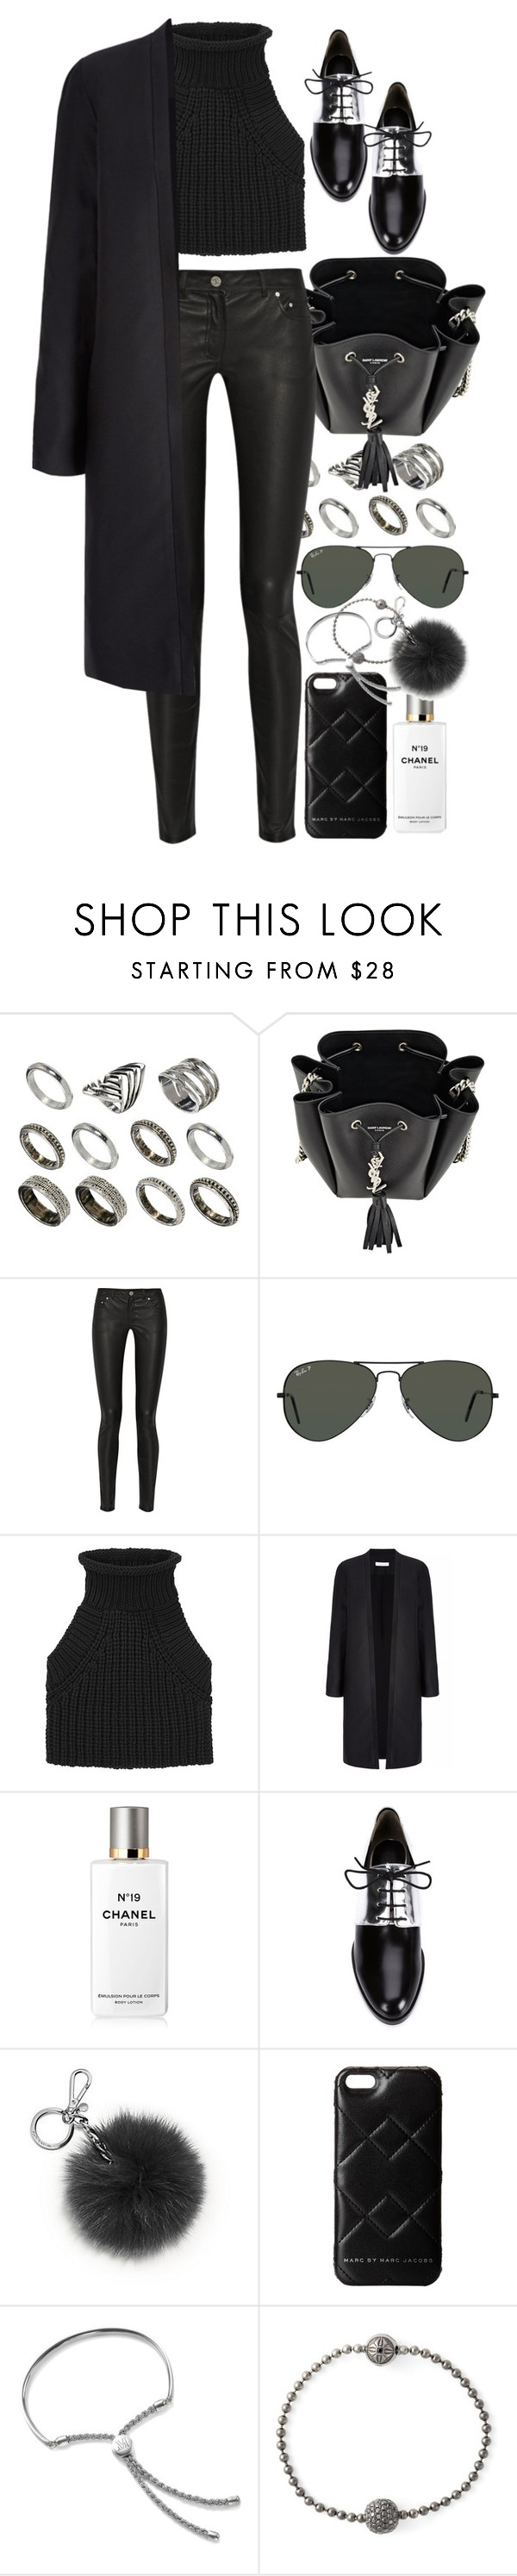 """Untitled #8539"" by nikka-phillips ❤ liked on Polyvore featuring ASOS, Yves Saint Laurent, Acne Studios, Ray-Ban, Alexander Wang, Chanel, 3.1 Phillip Lim, Michael Kors, Marc by Marc Jacobs and Monica Vinader"